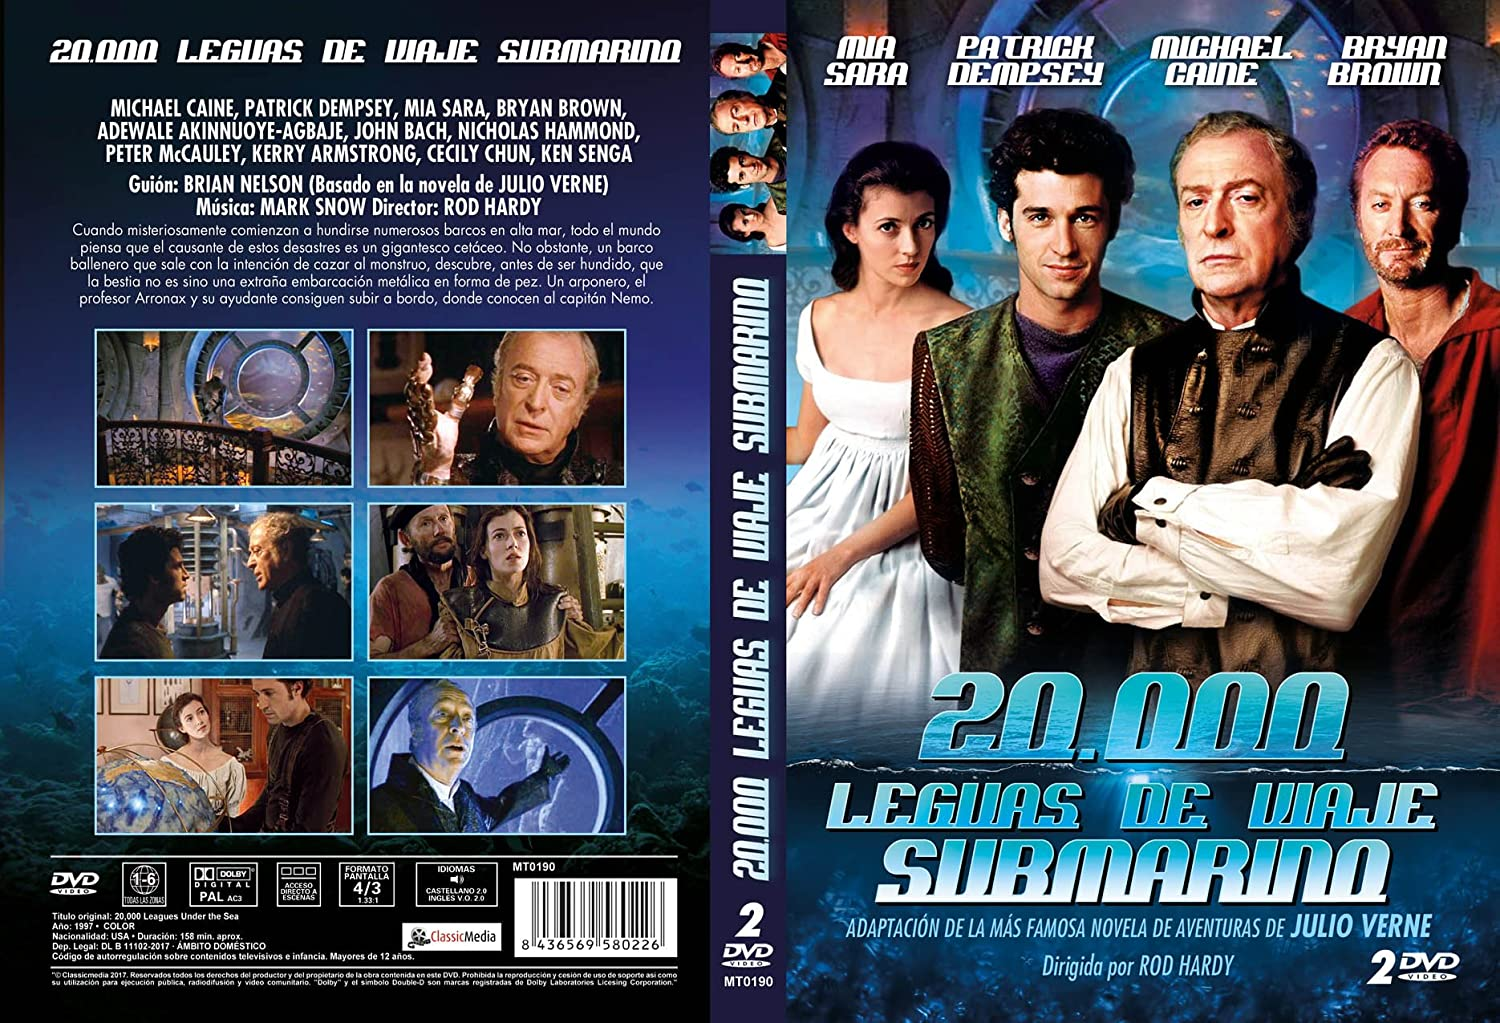 20 000 Leguas De Viaje Submarino 20 000 Leagues Under The Sea 1997 Movies Tv